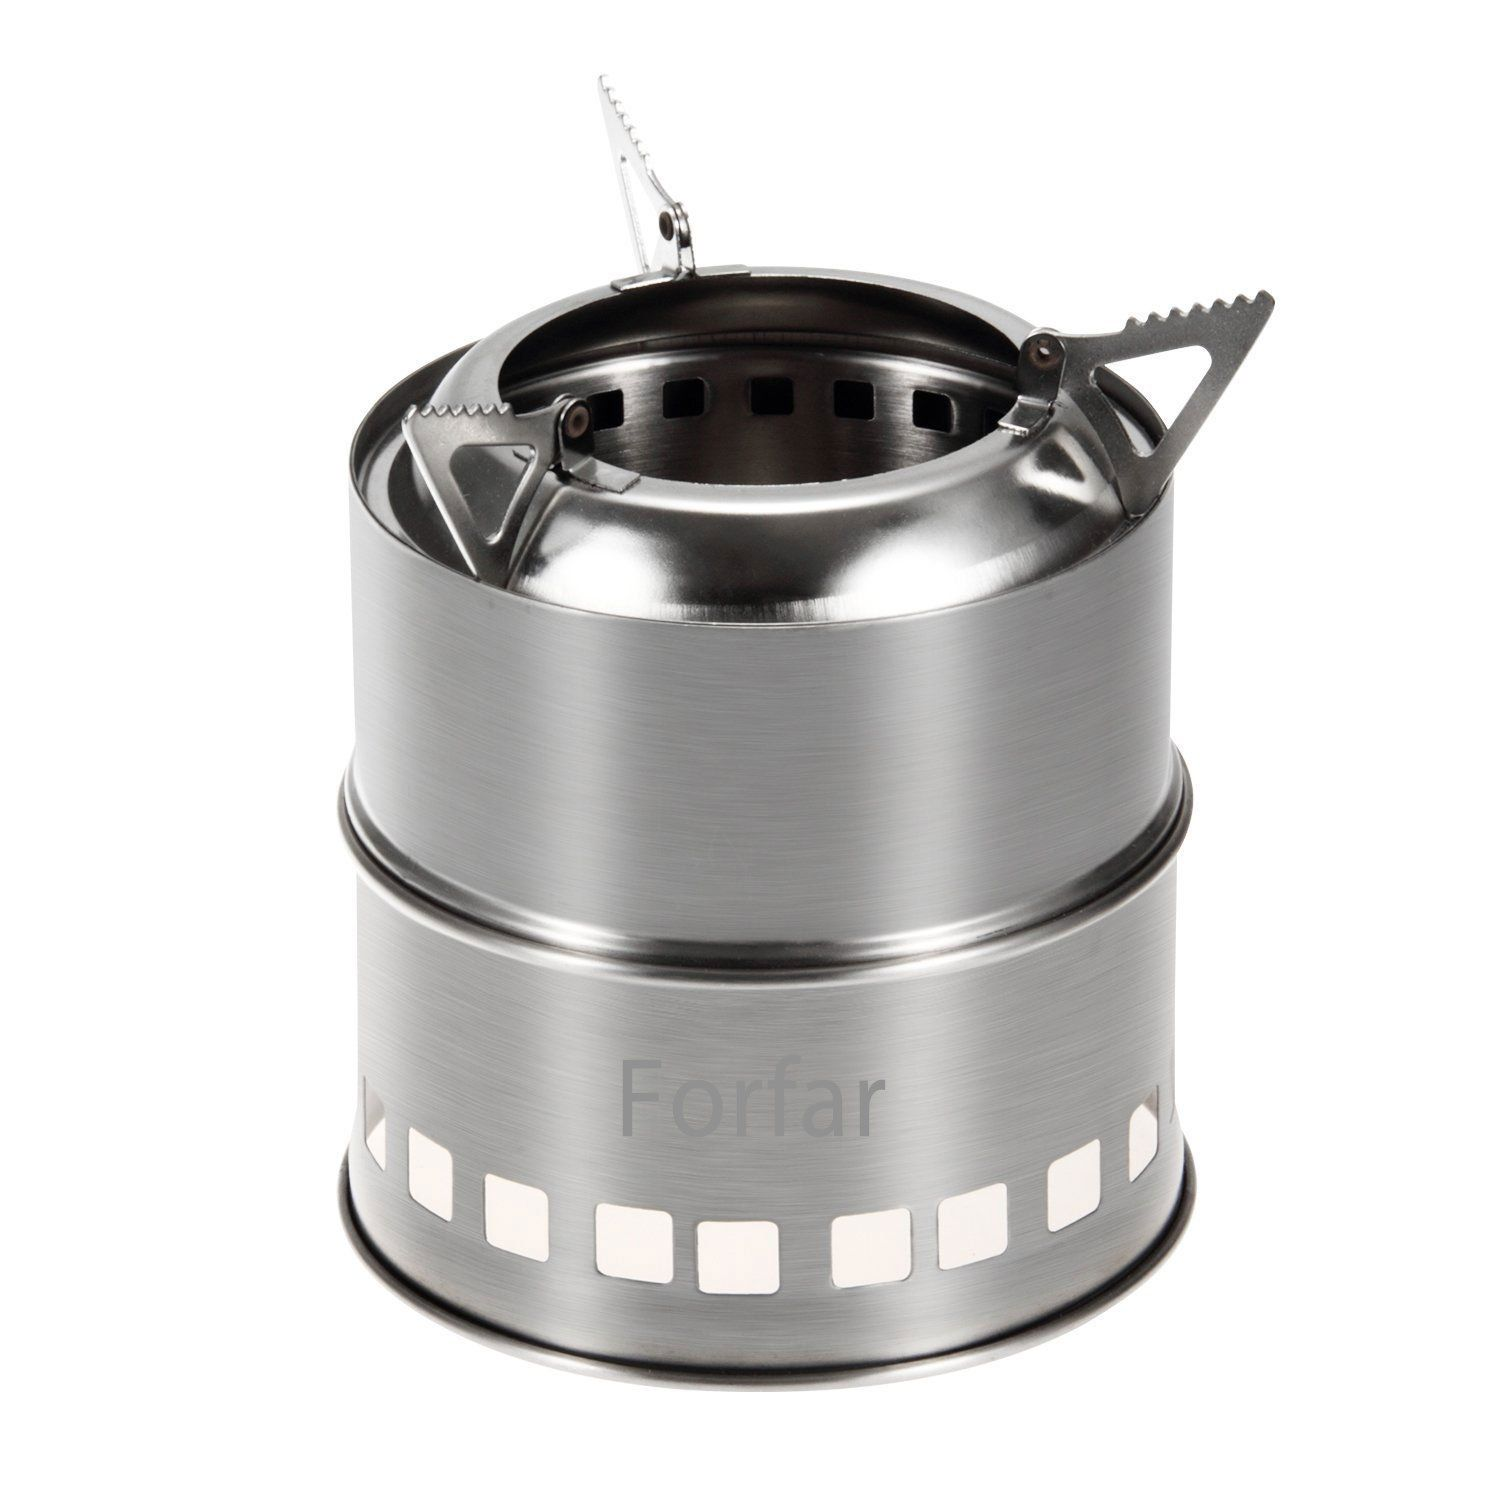 Forfar Camping Stove Portable Stainless Steel Lightweight